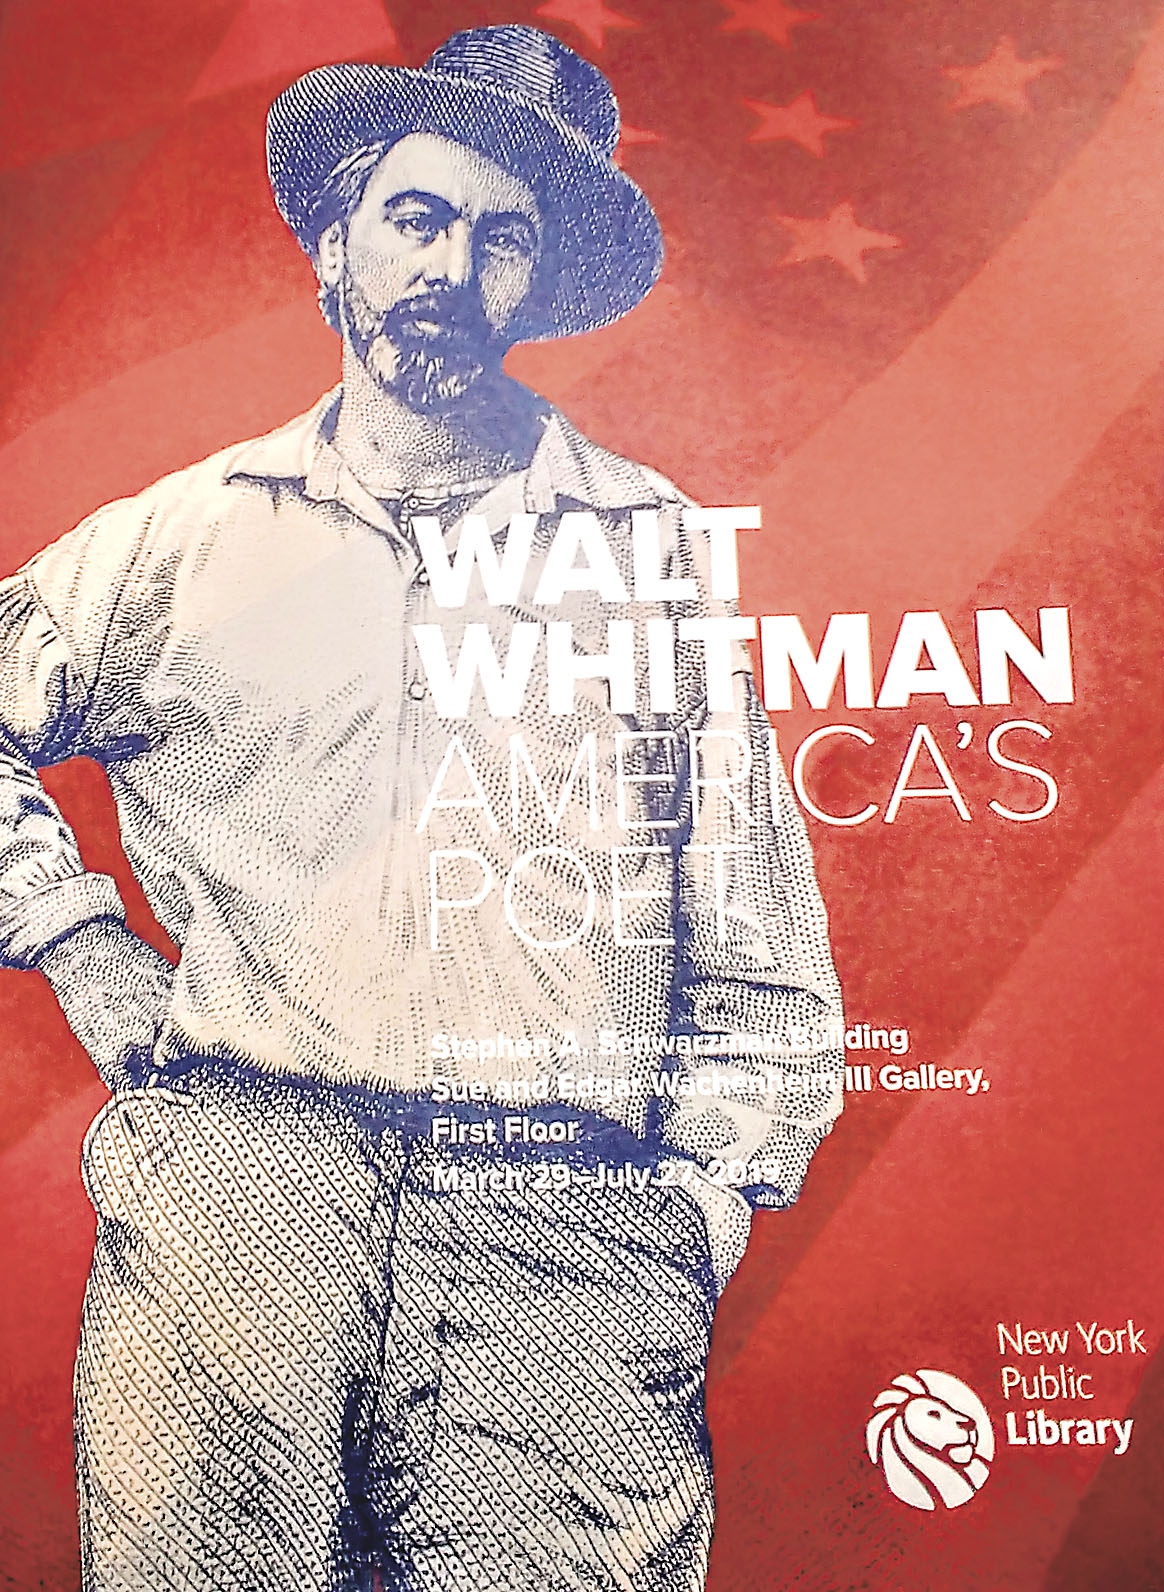 New York Public Library joined the celebration of Walt Whitman's 200th birthday with an exhibit devoted to the Huntington Station-born poet.